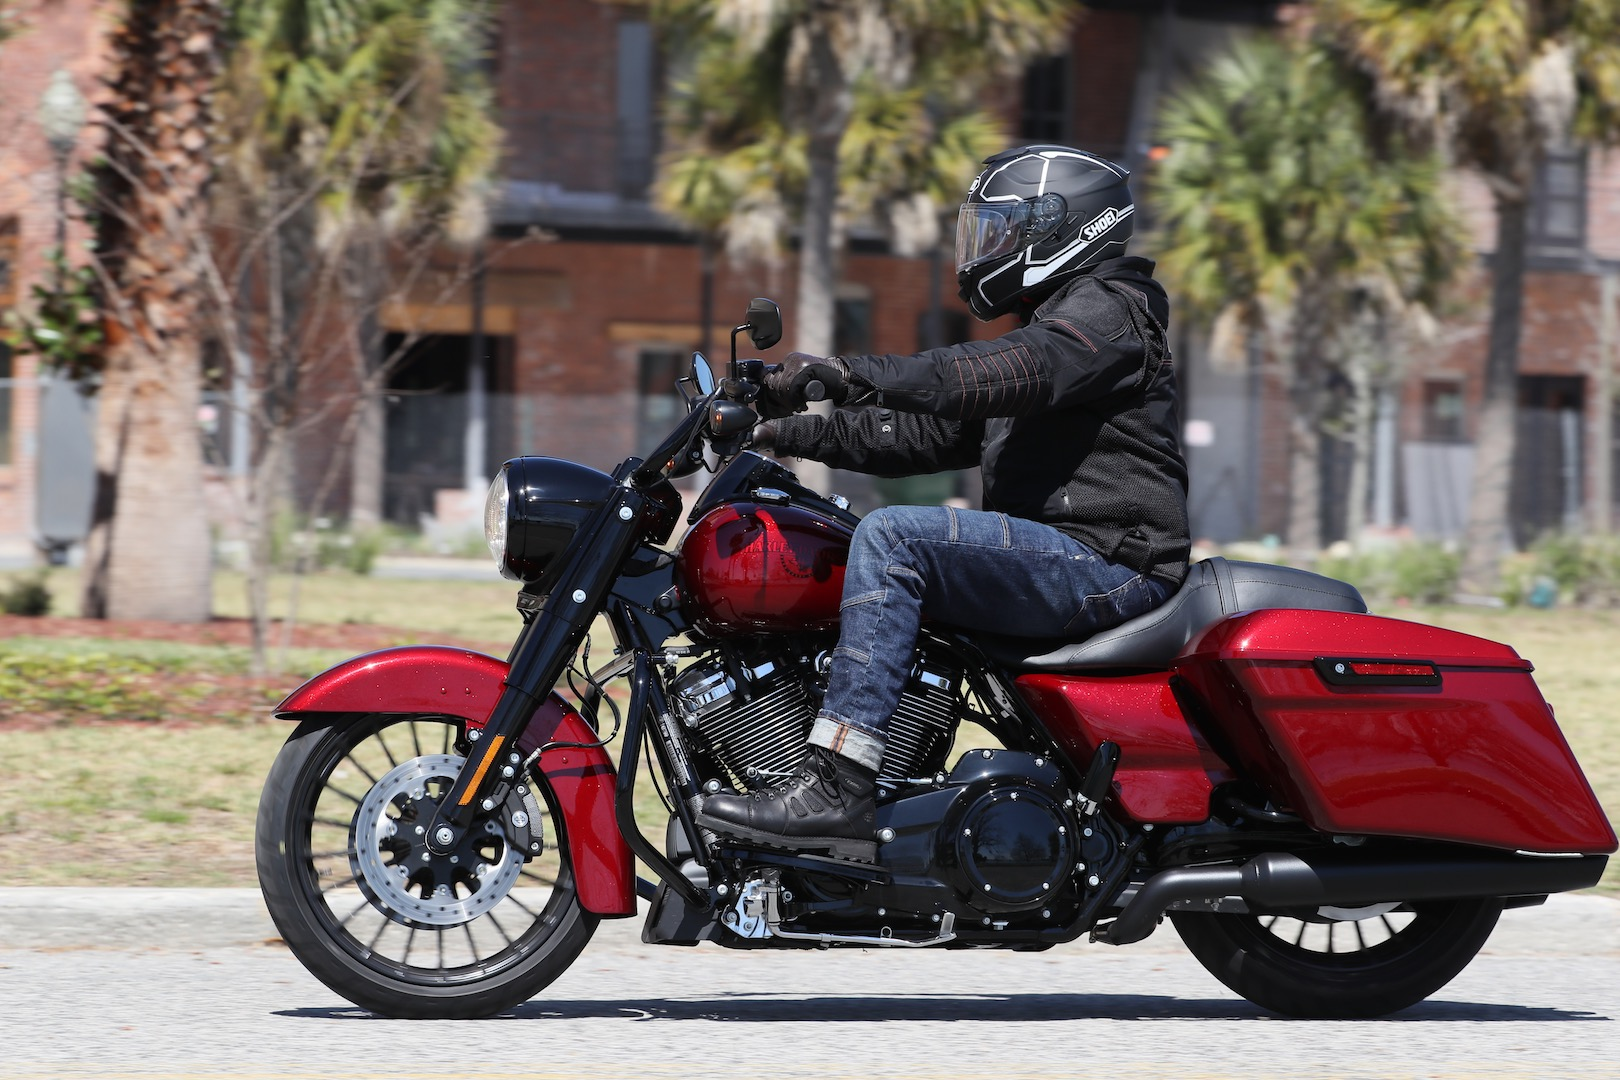 2017 Harley-Davidson Road King Special Review